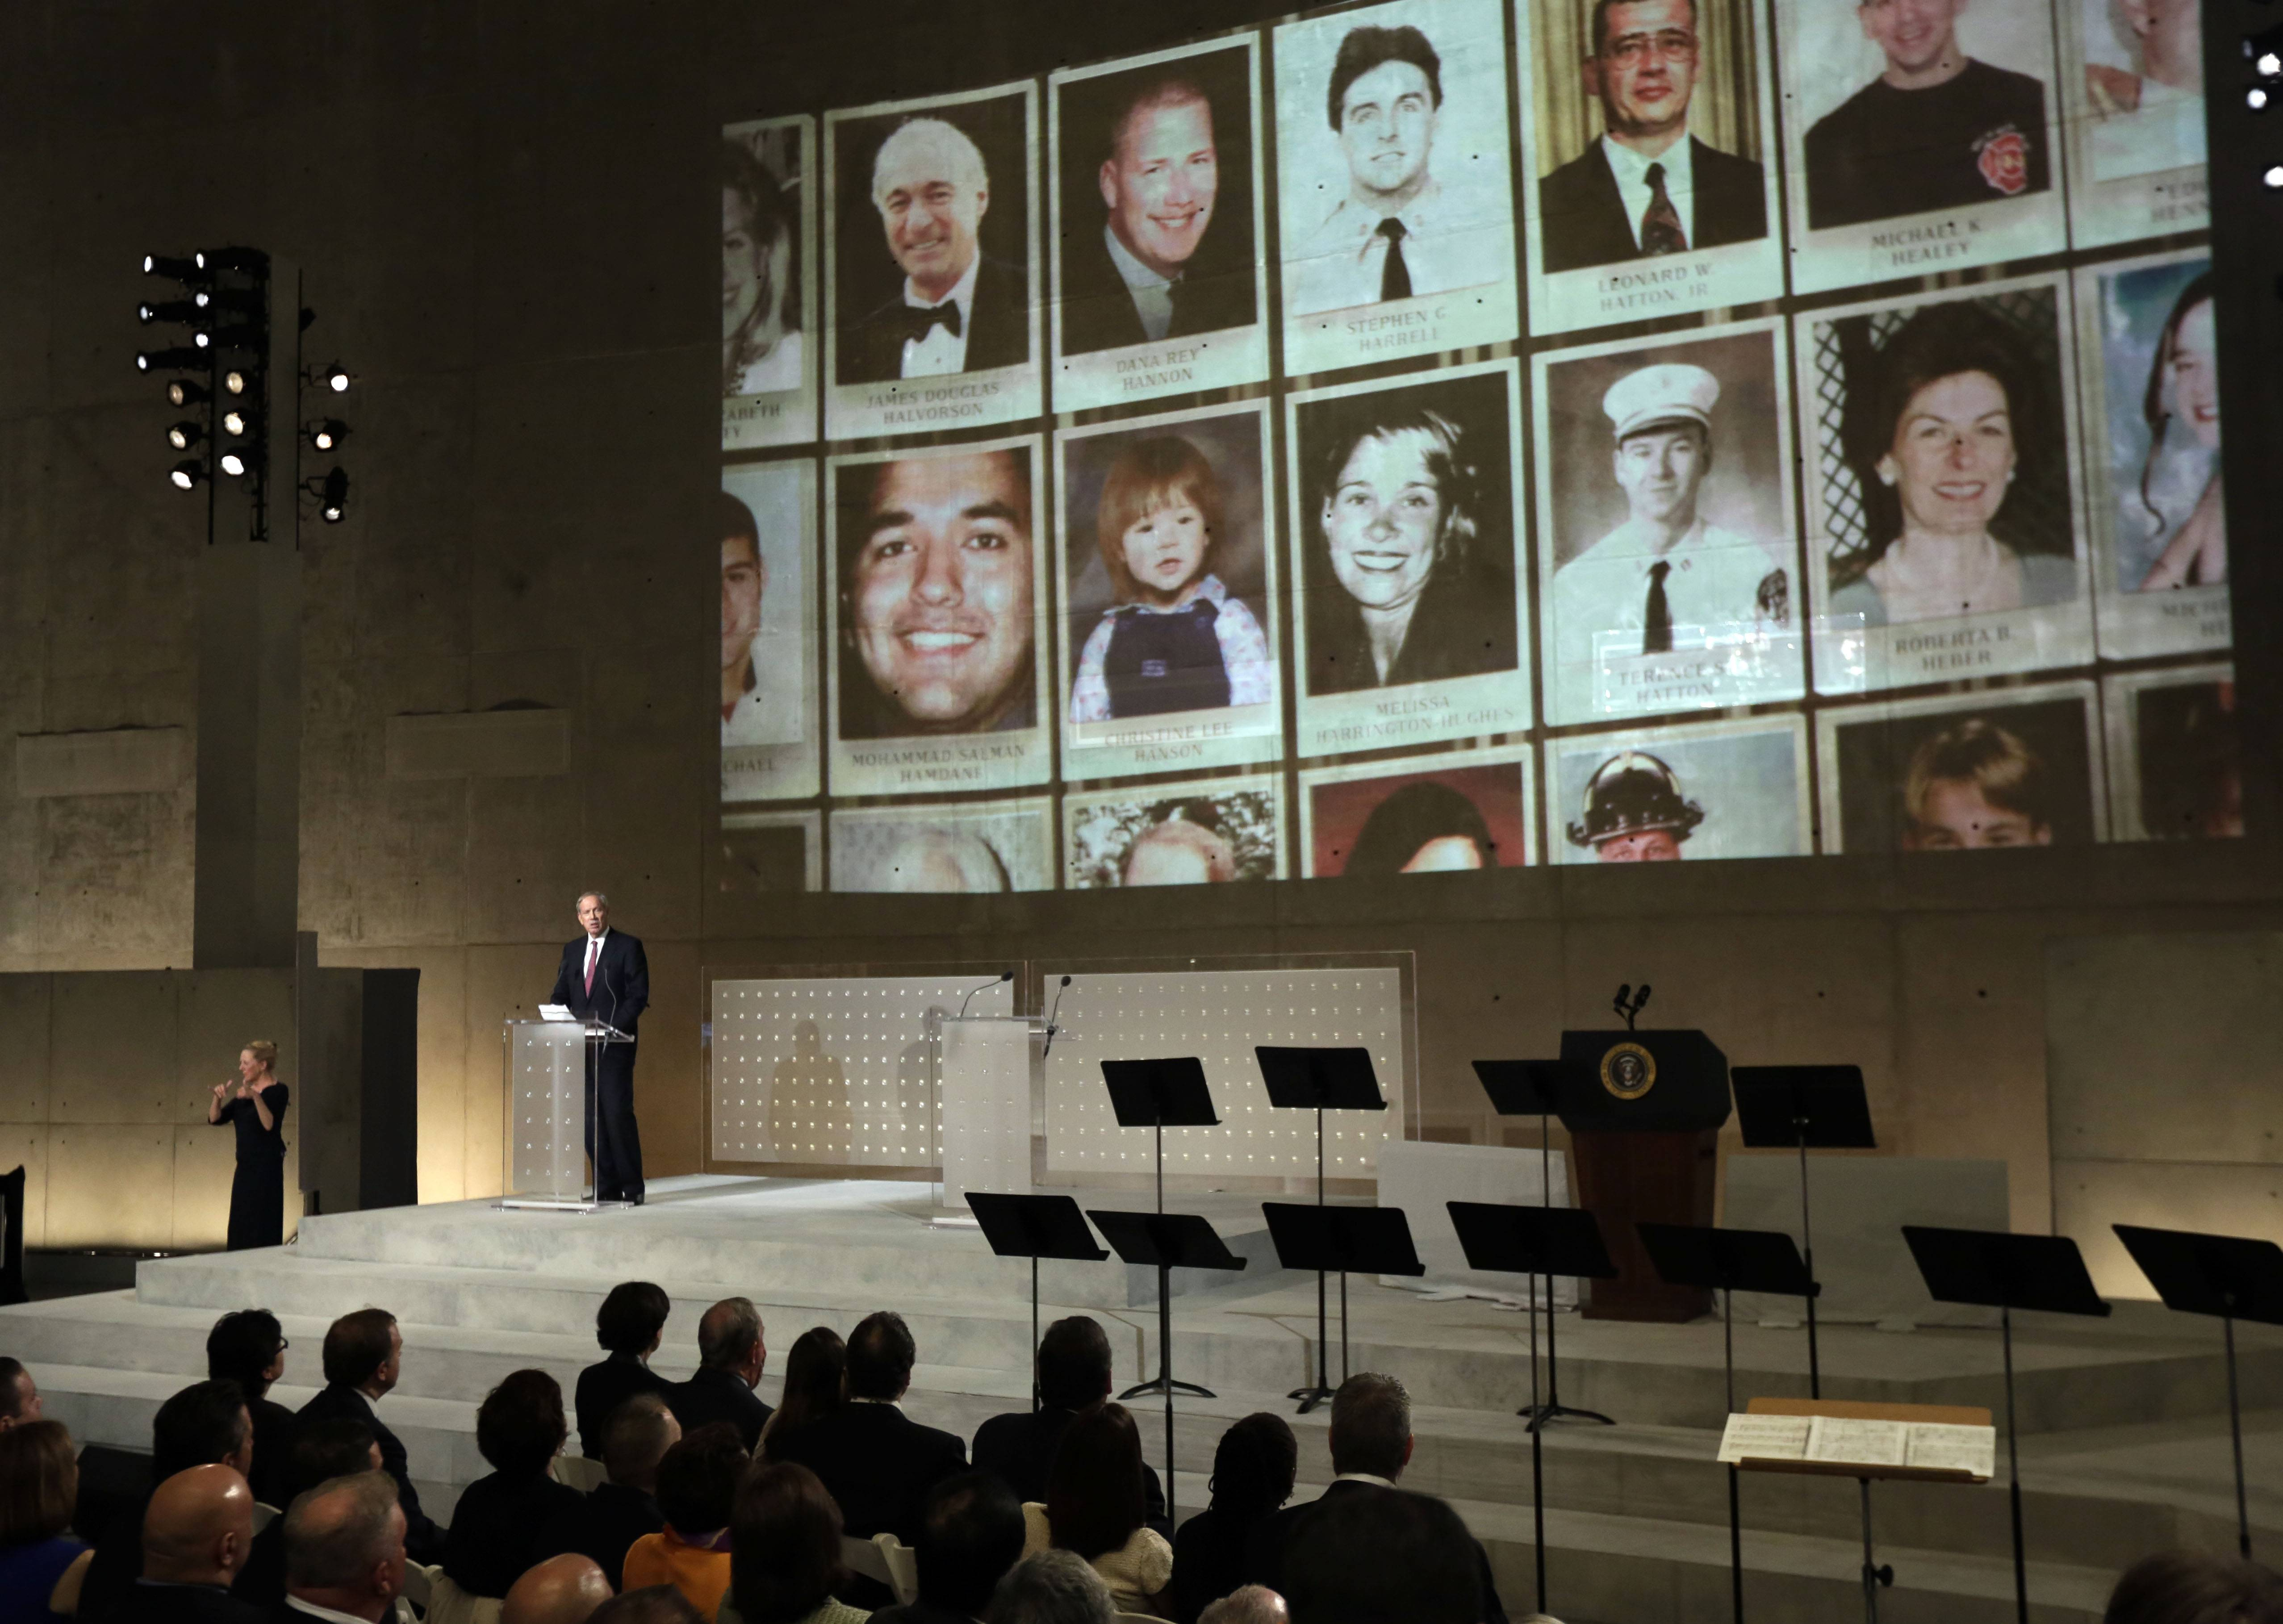 Former New York Gov. George Pataki speaks as photos of 9/11 victims are projected during the dedication ceremony.